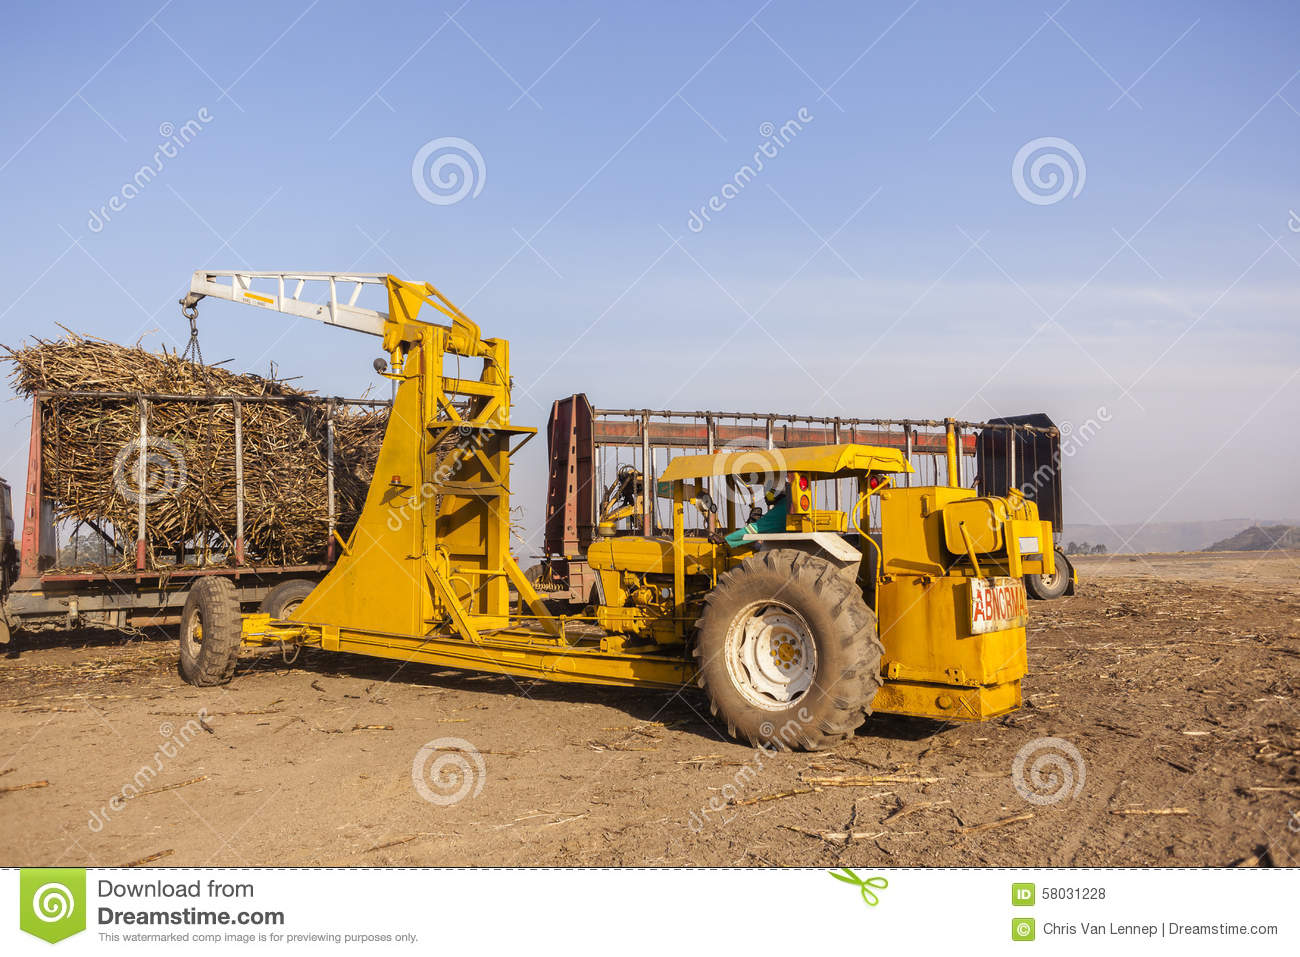 Hydraulic Loading Arms : Sugarcane tractor loading editorial stock photo image